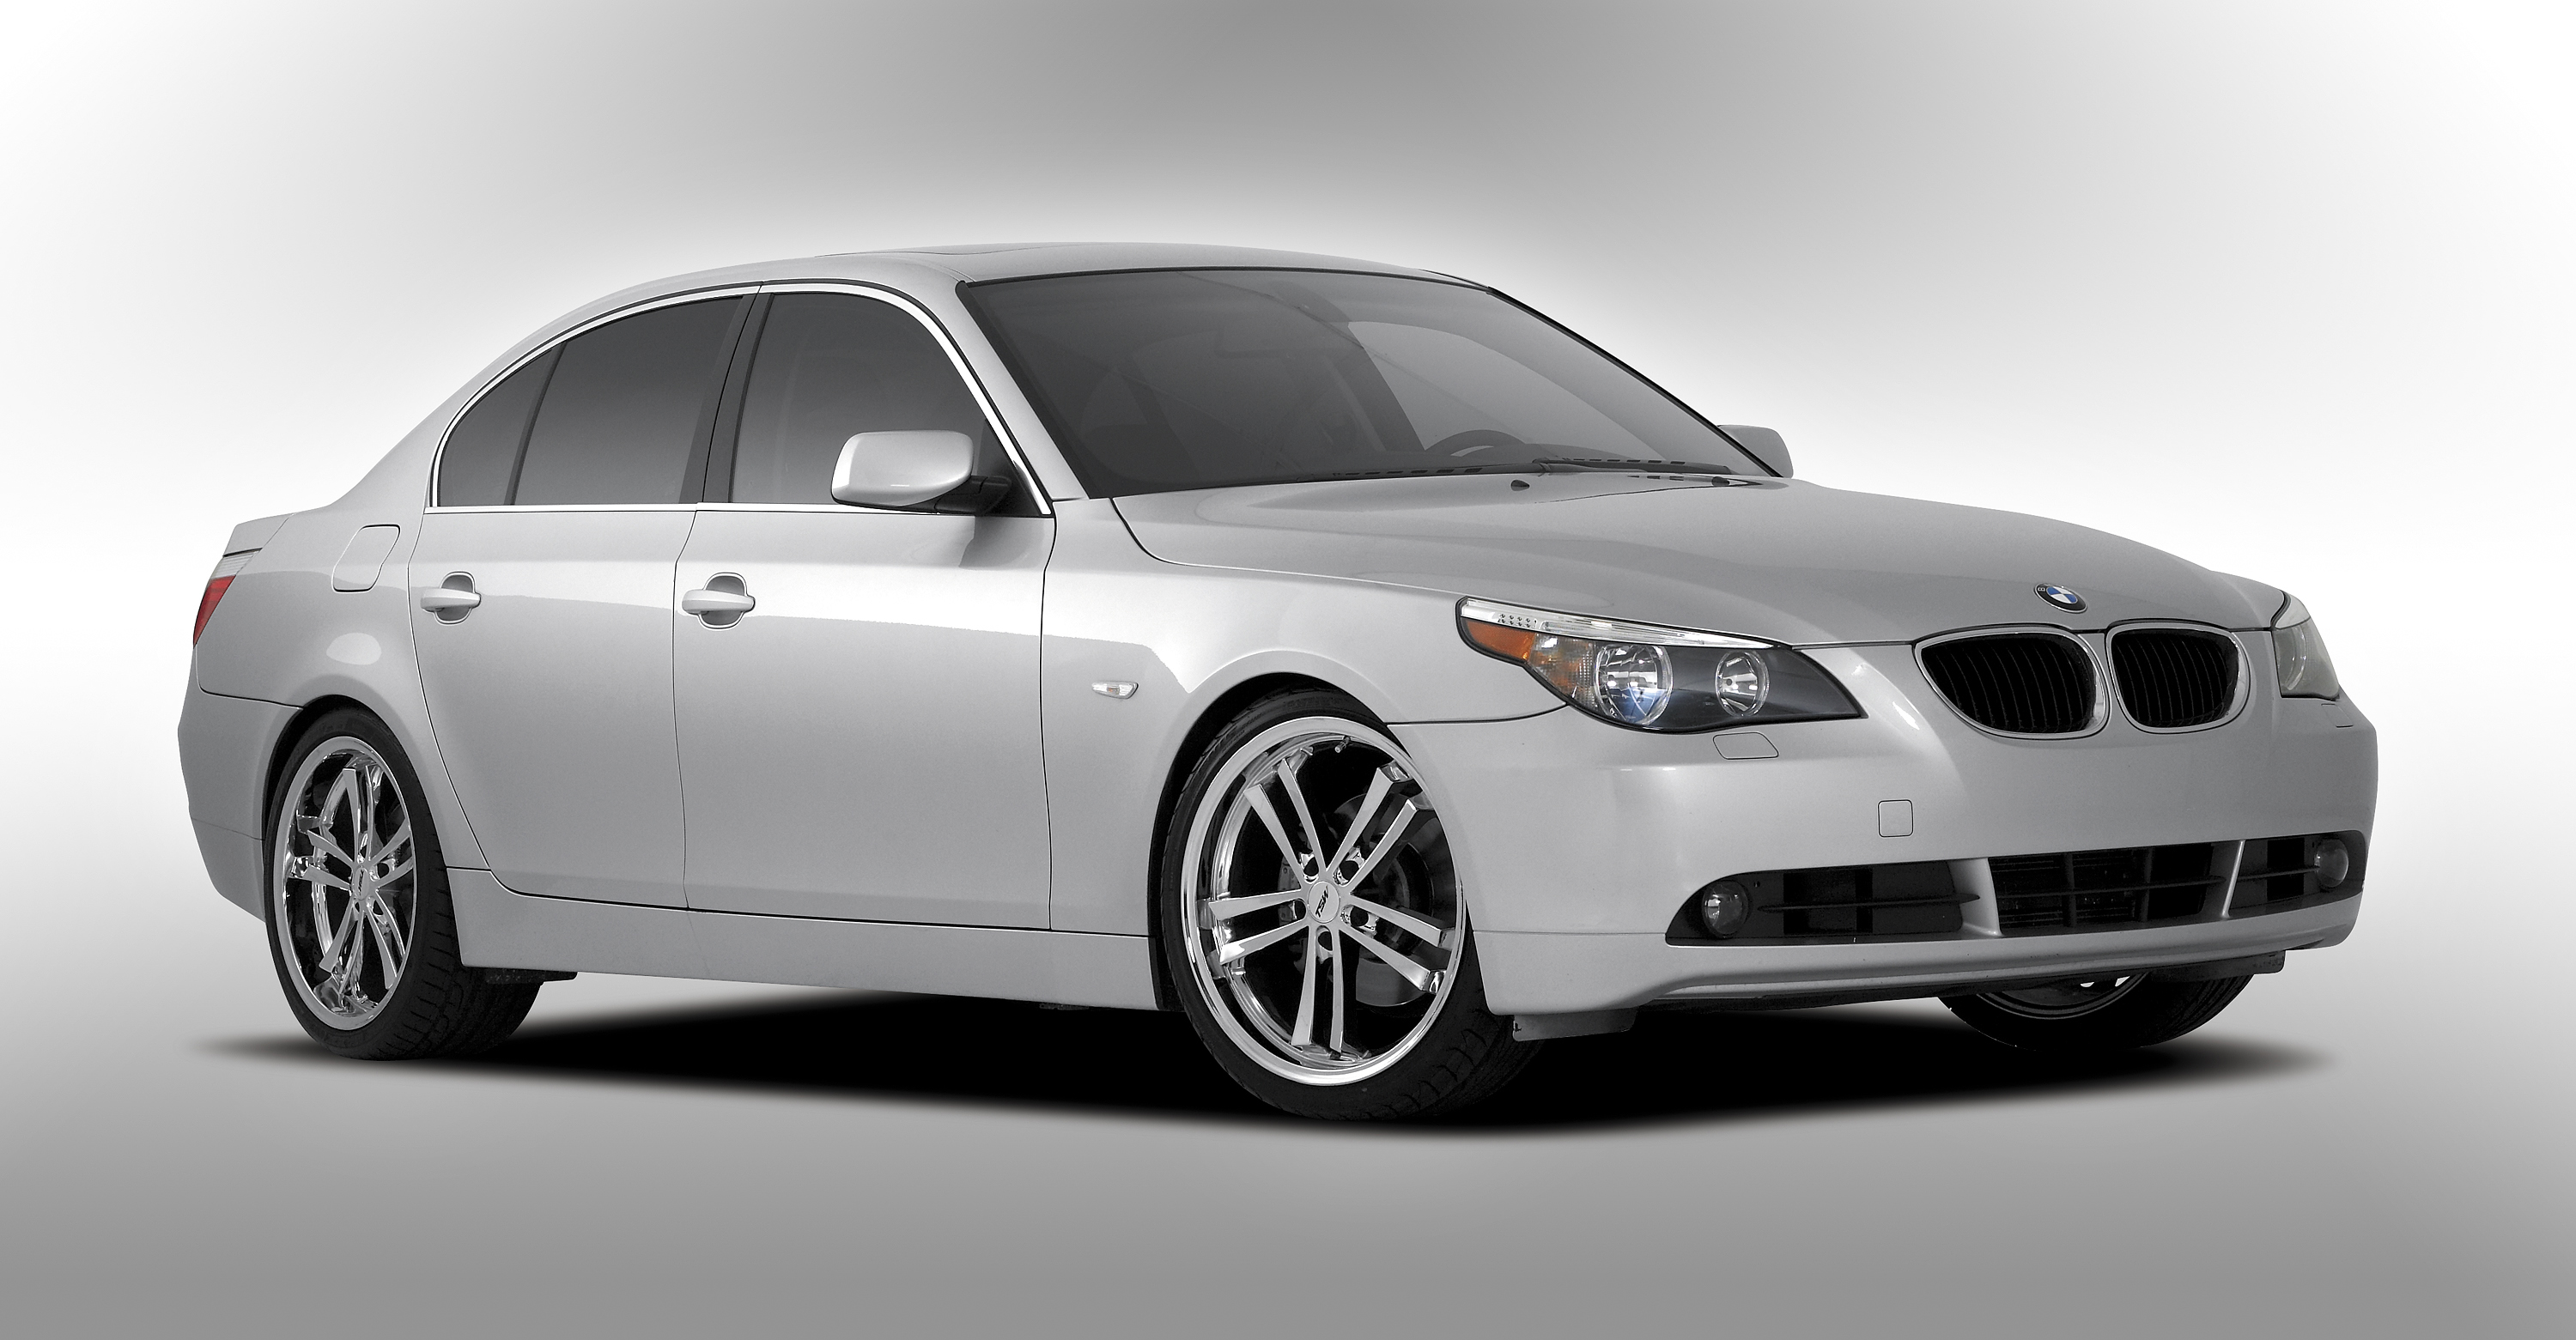 http://www.tsw.com/download/files/tsw_bmw_5_series_front.jpg